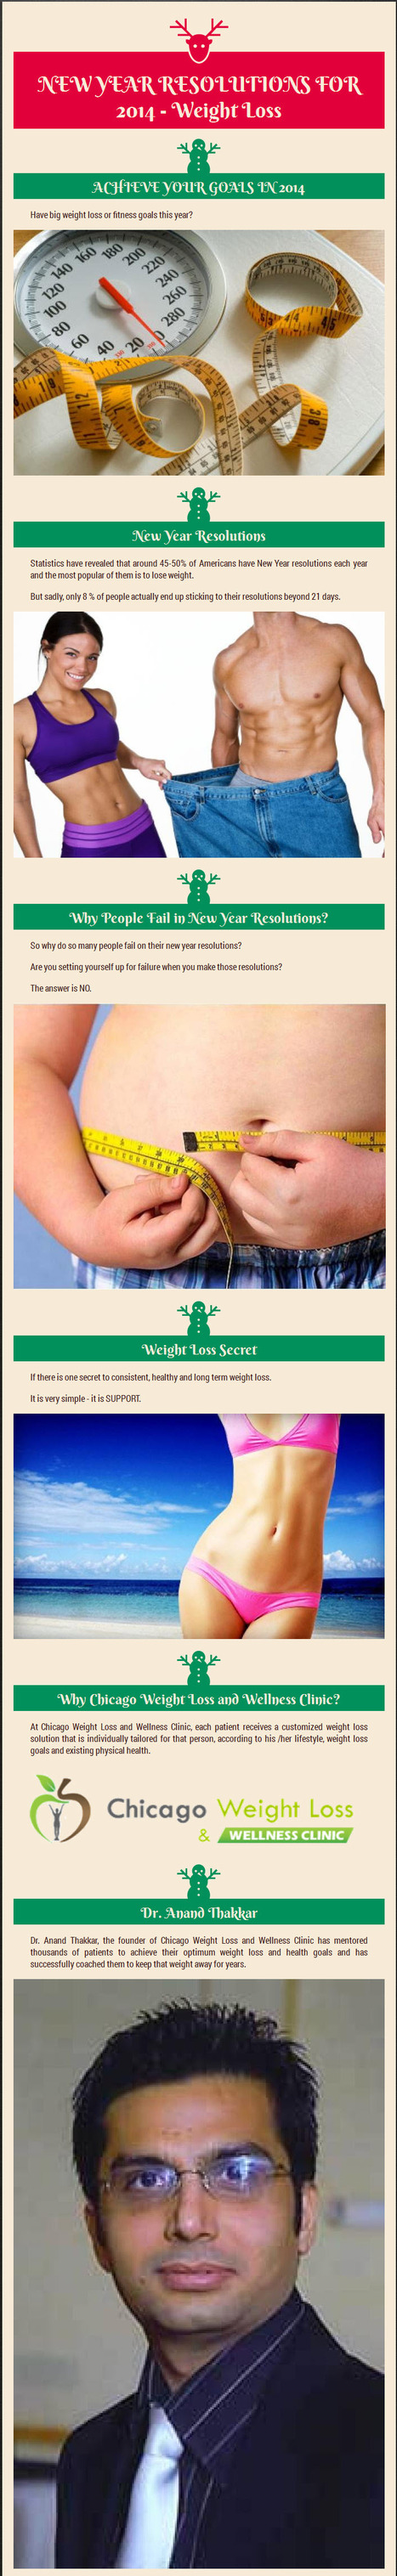 NEW YEAR RESOLUTIONS FOR 2014 - Weight Loss | Chicago Weight Loss | Scoop.it